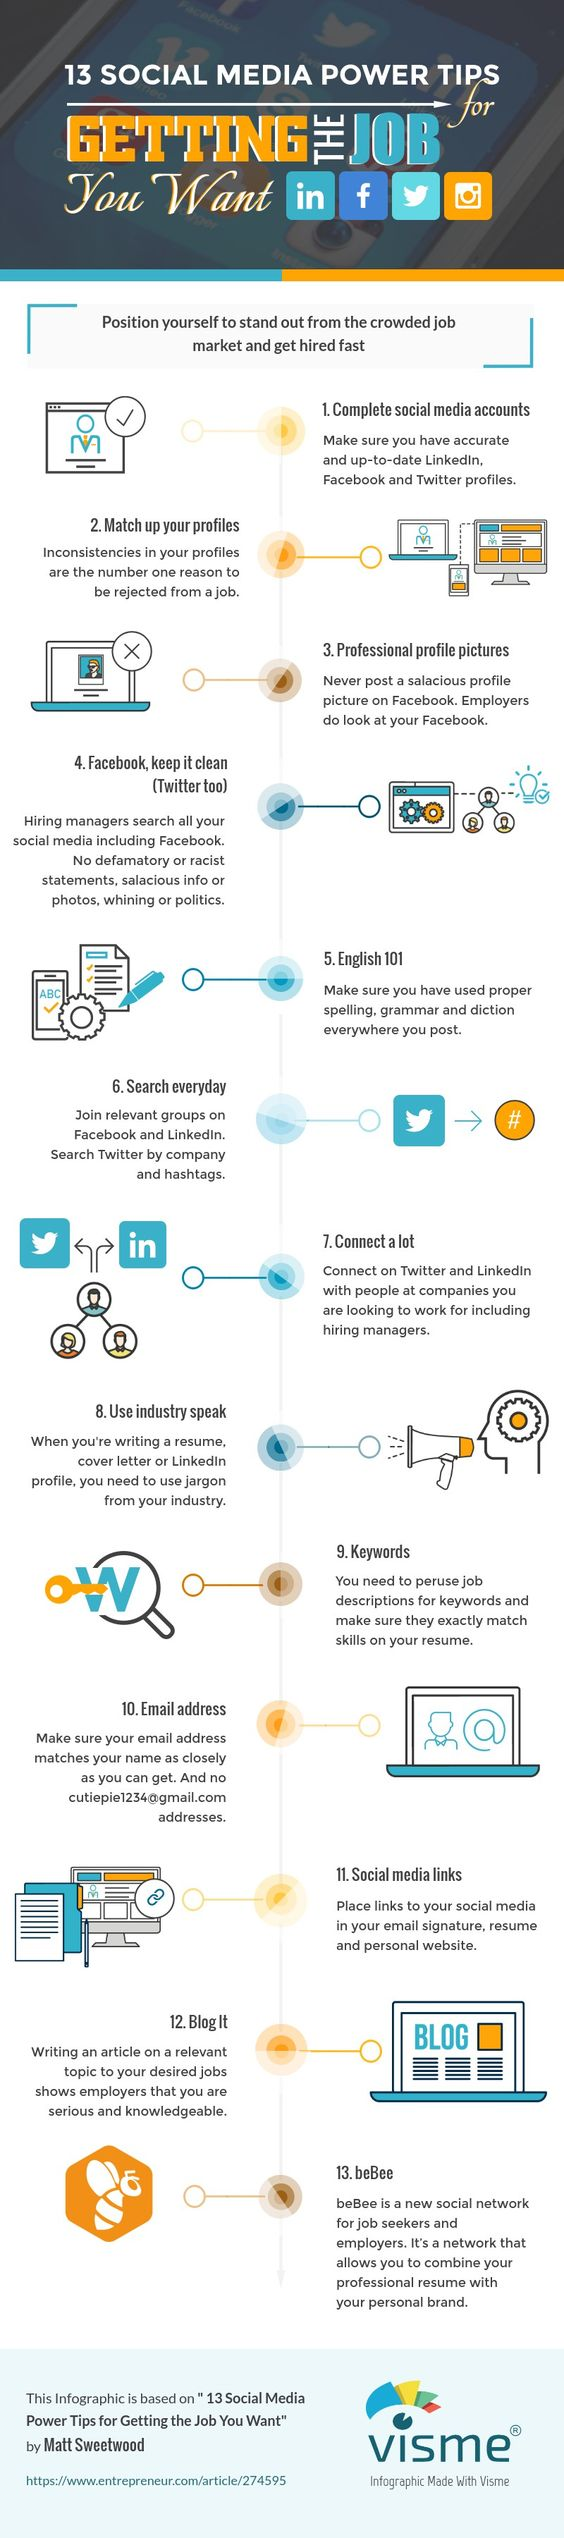 [Infographic] 13 Social Media Power Tips for Getting the Job You Want